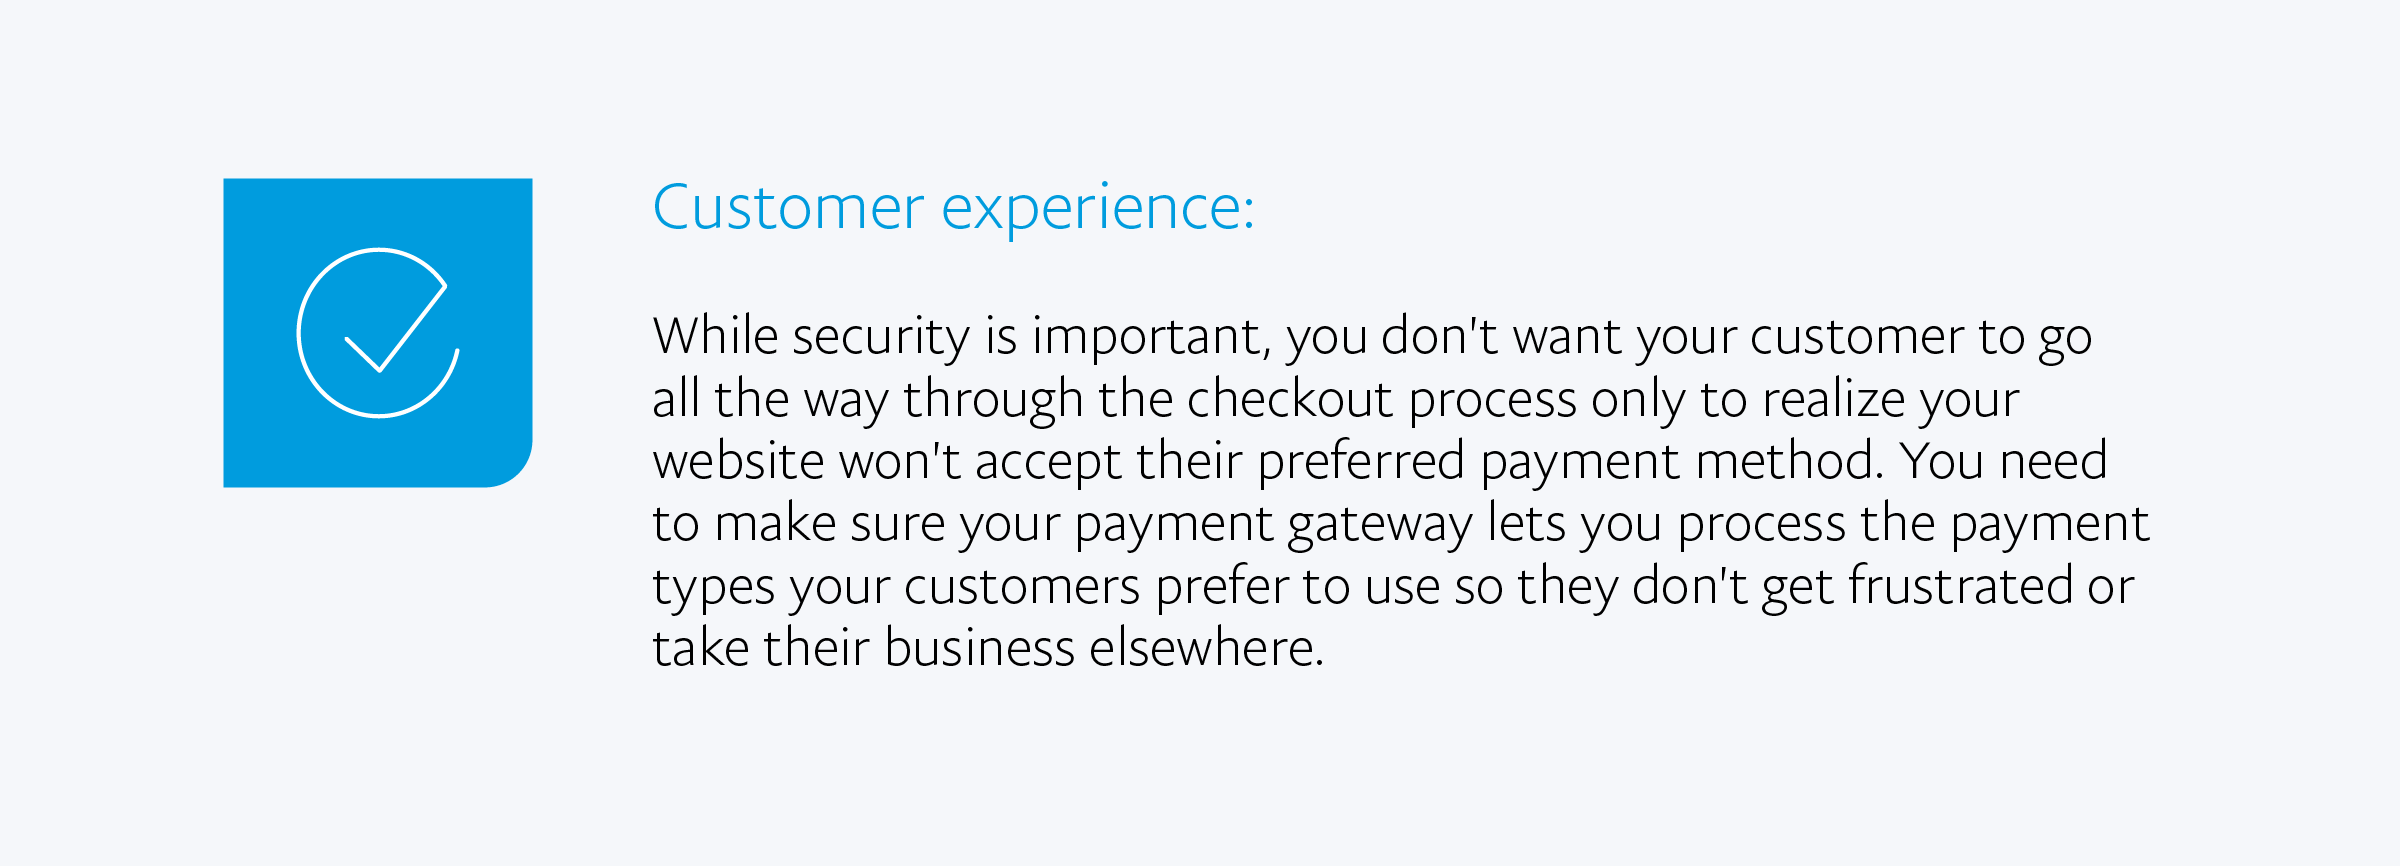 Customer experience: While security is important, you don't want your customer to go all the way through the checkout process only to realize your website won't accept their preferred payment method. You need to make sure your payment gateway lets you process the payment types your customers prefer to use so they don't get frustrated or take their business elsewhere.